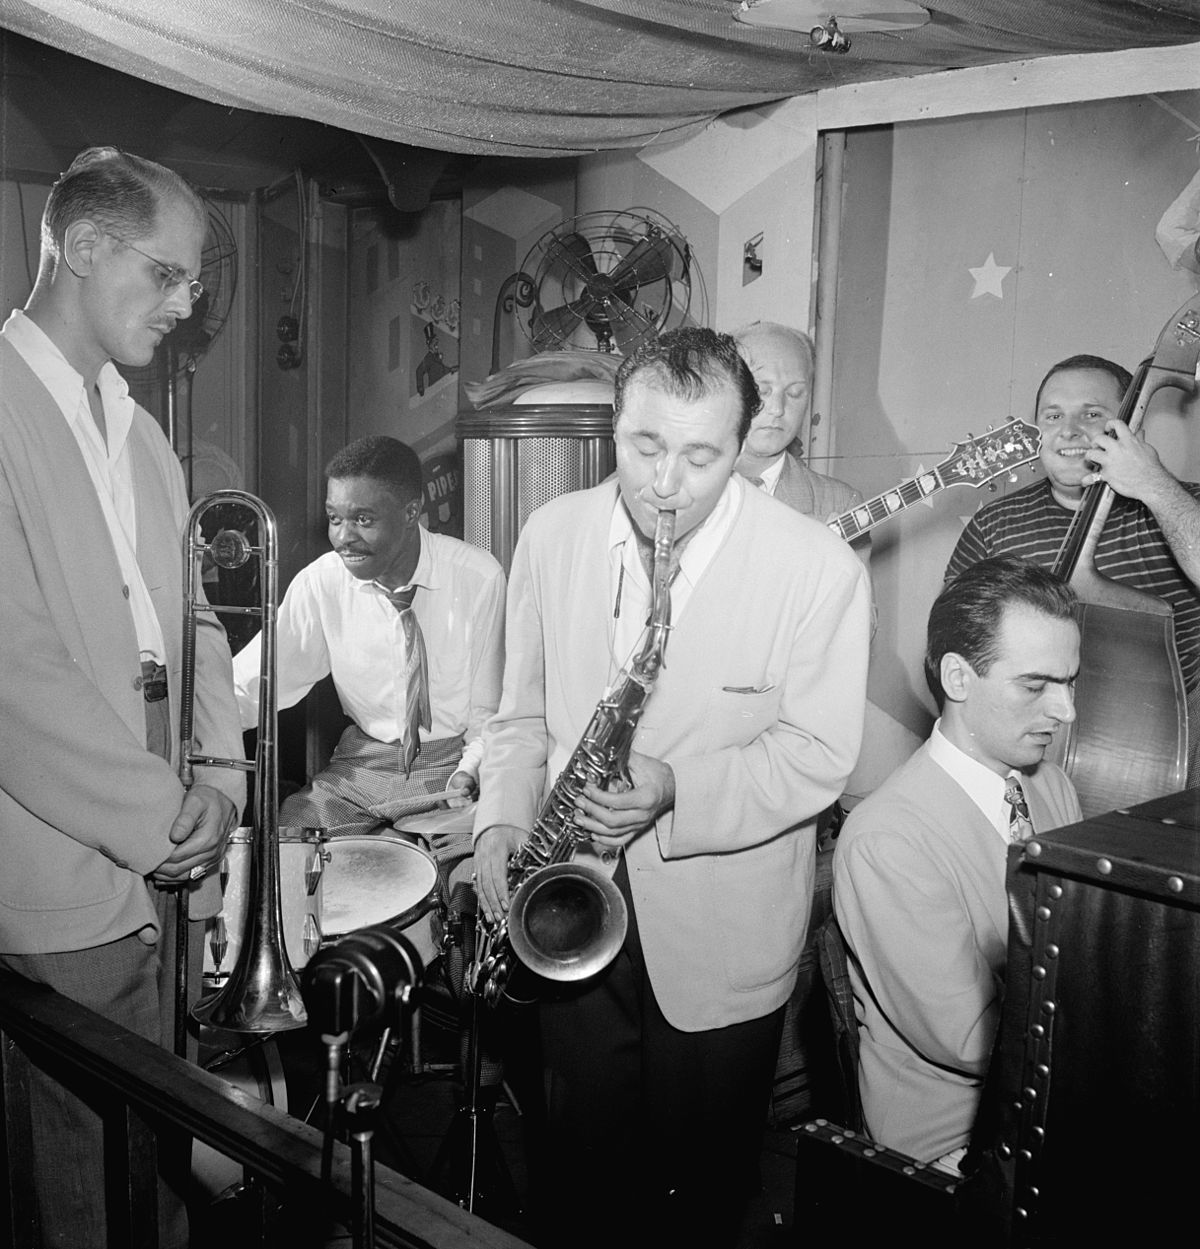 Charlie parker and chubby jackson